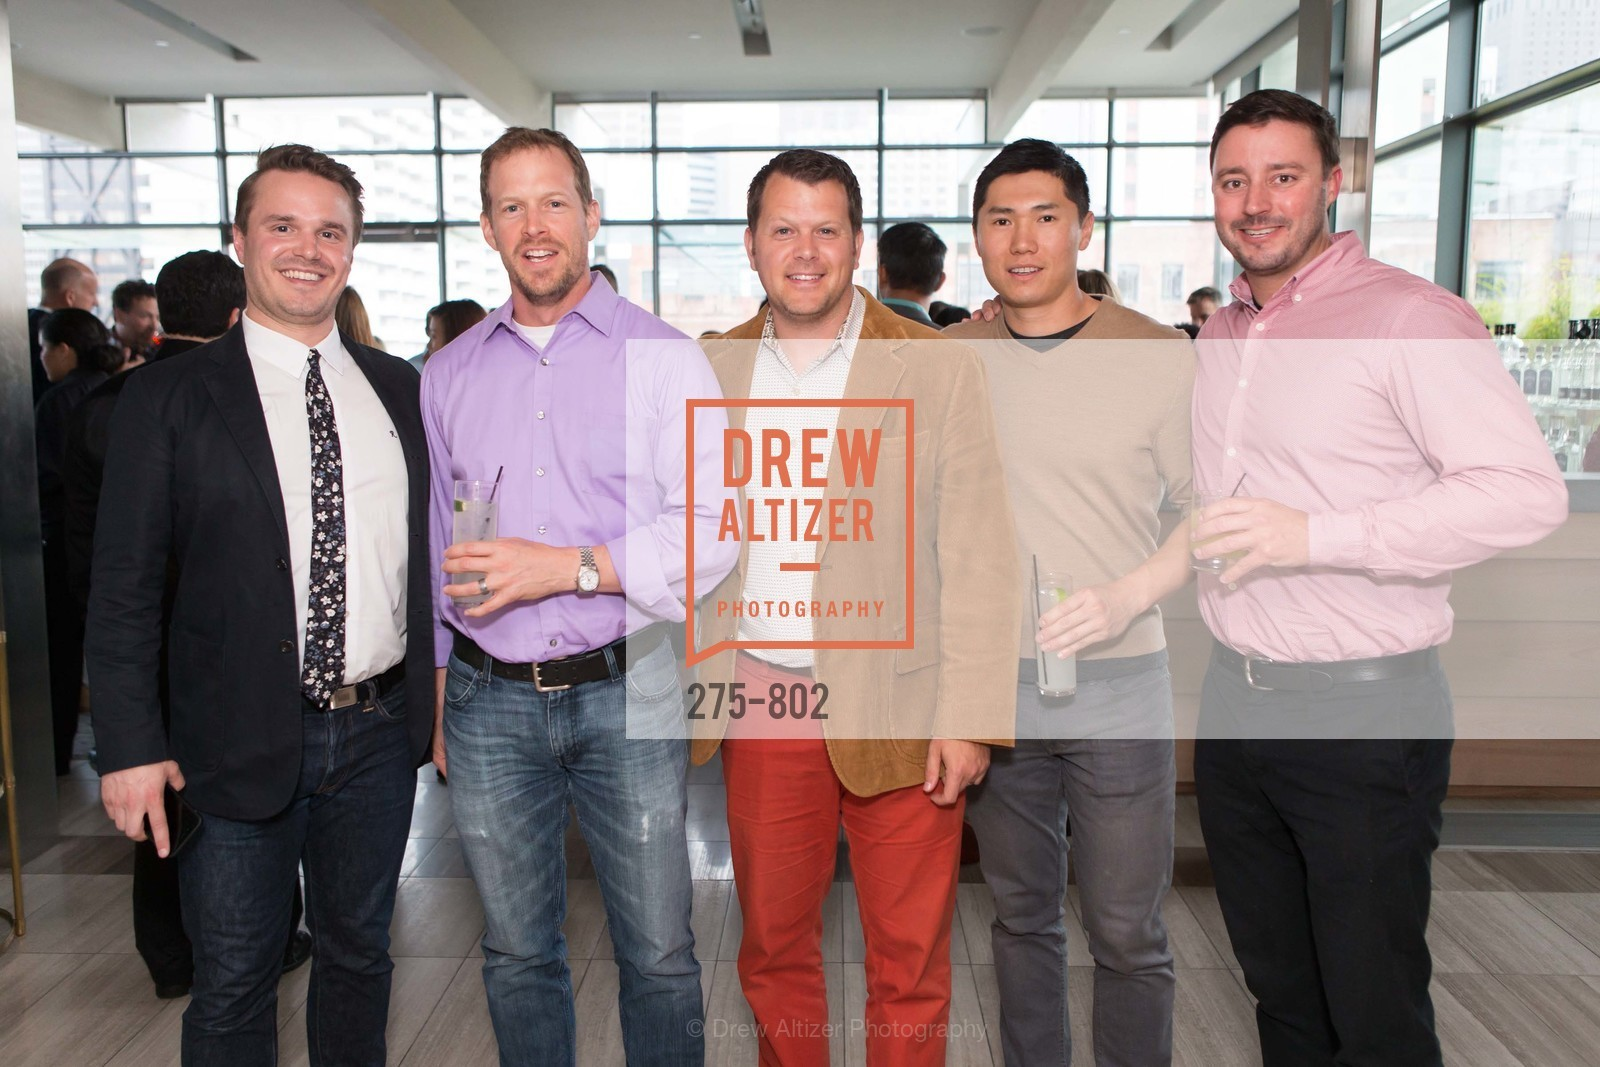 Michael Krueger, John McNulty, David Luntz, Randy Sun, Devon Griswall, MR PORTER Celebrate The San Francisco Issue of The Journal, US, April 24th, 2015,Drew Altizer, Drew Altizer Photography, full-service event agency, private events, San Francisco photographer, photographer California